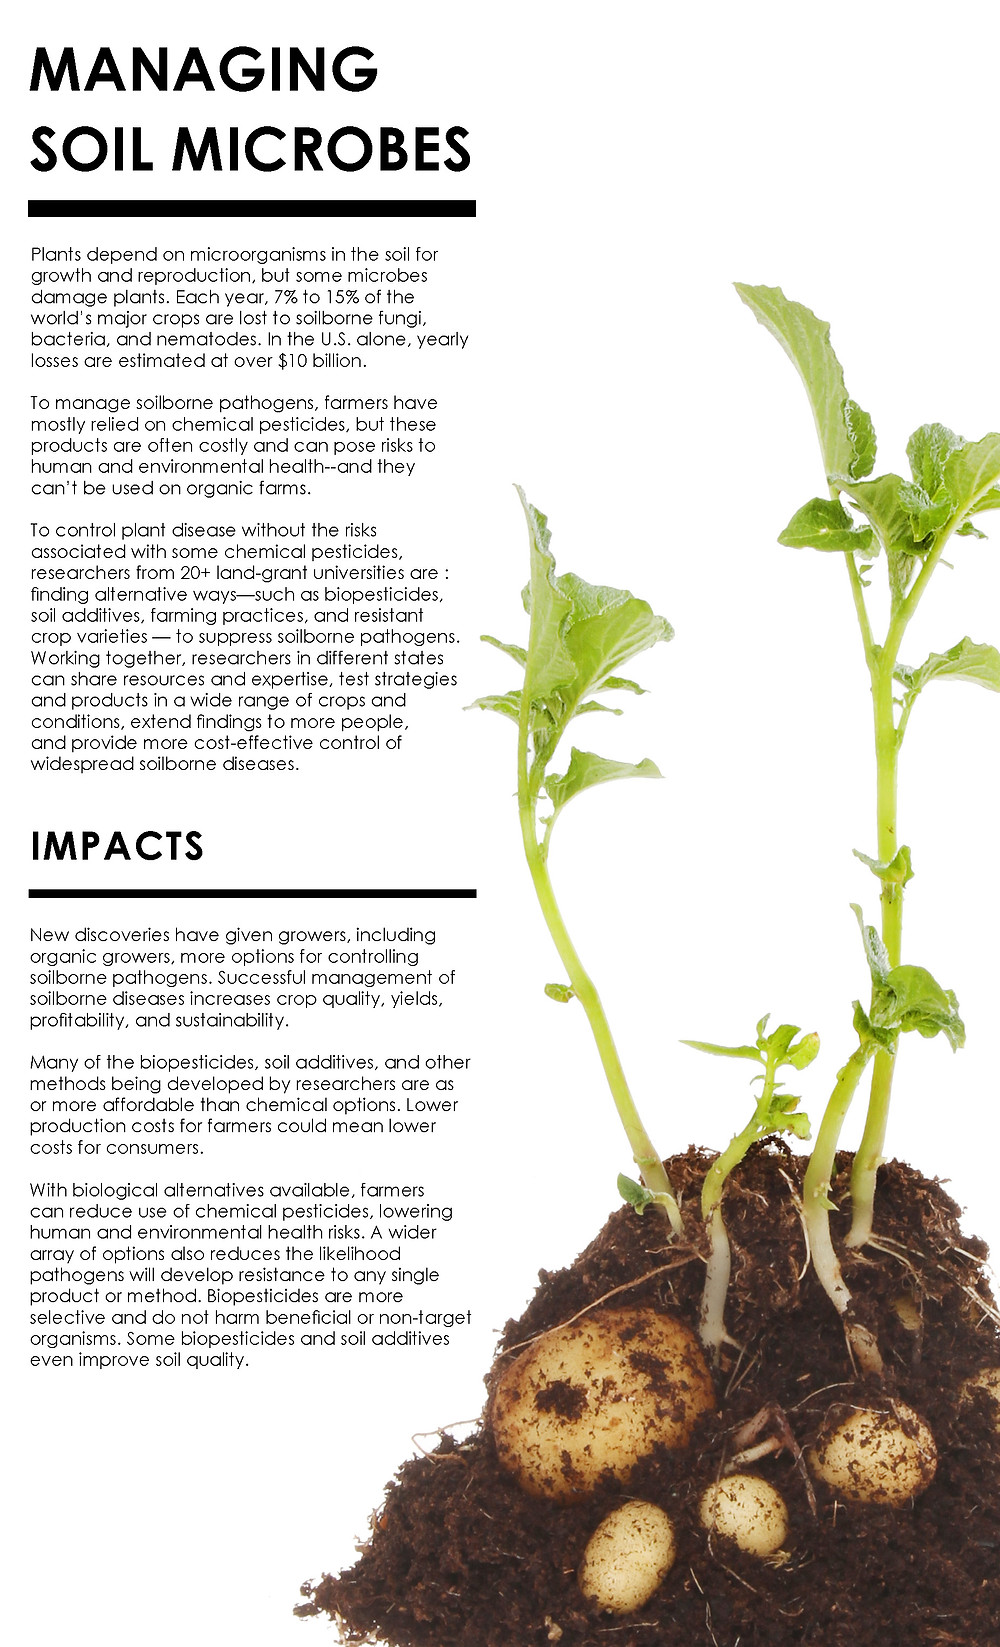 Click on the image below to view/download a PDF of the Impact Statement.